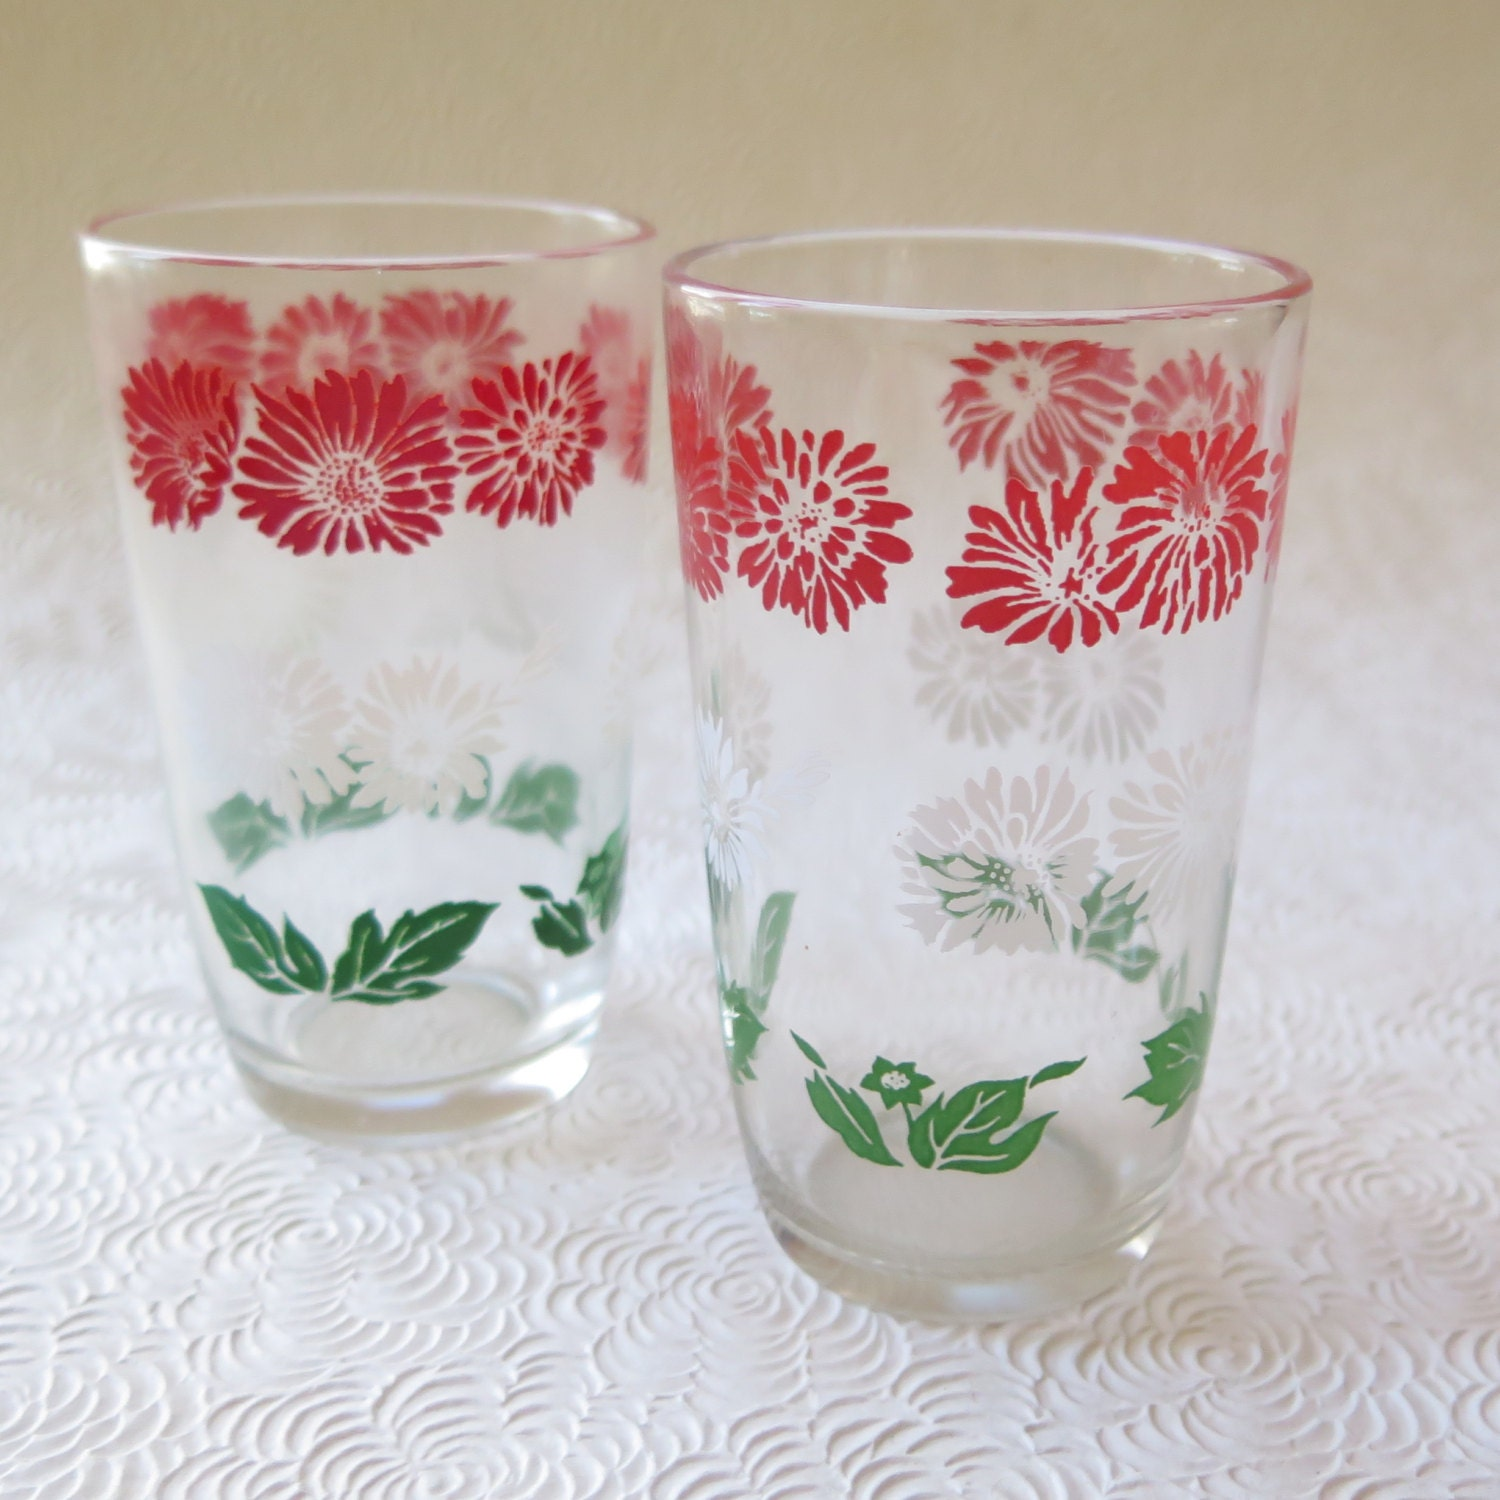 Red Kitchen Glassware: Swanky Swigs Vintage Glassware Juice Glasses Retro Kitchen Red